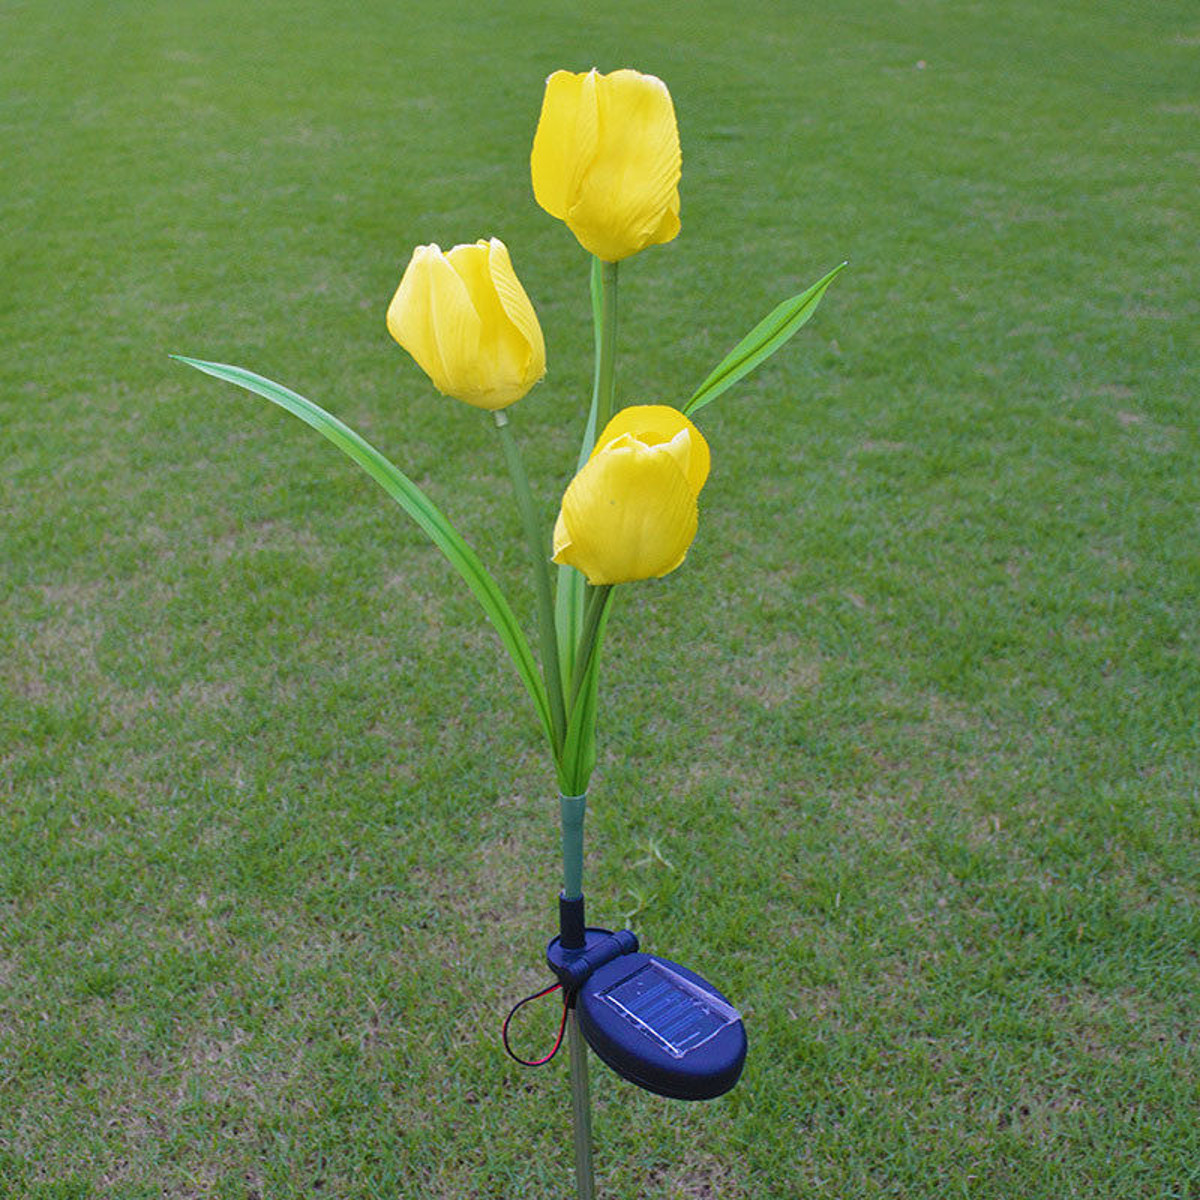 Outdoor Solar Lights Ireland: 2V Solar Power Mult Tulip Flower Garden Stake Landscape